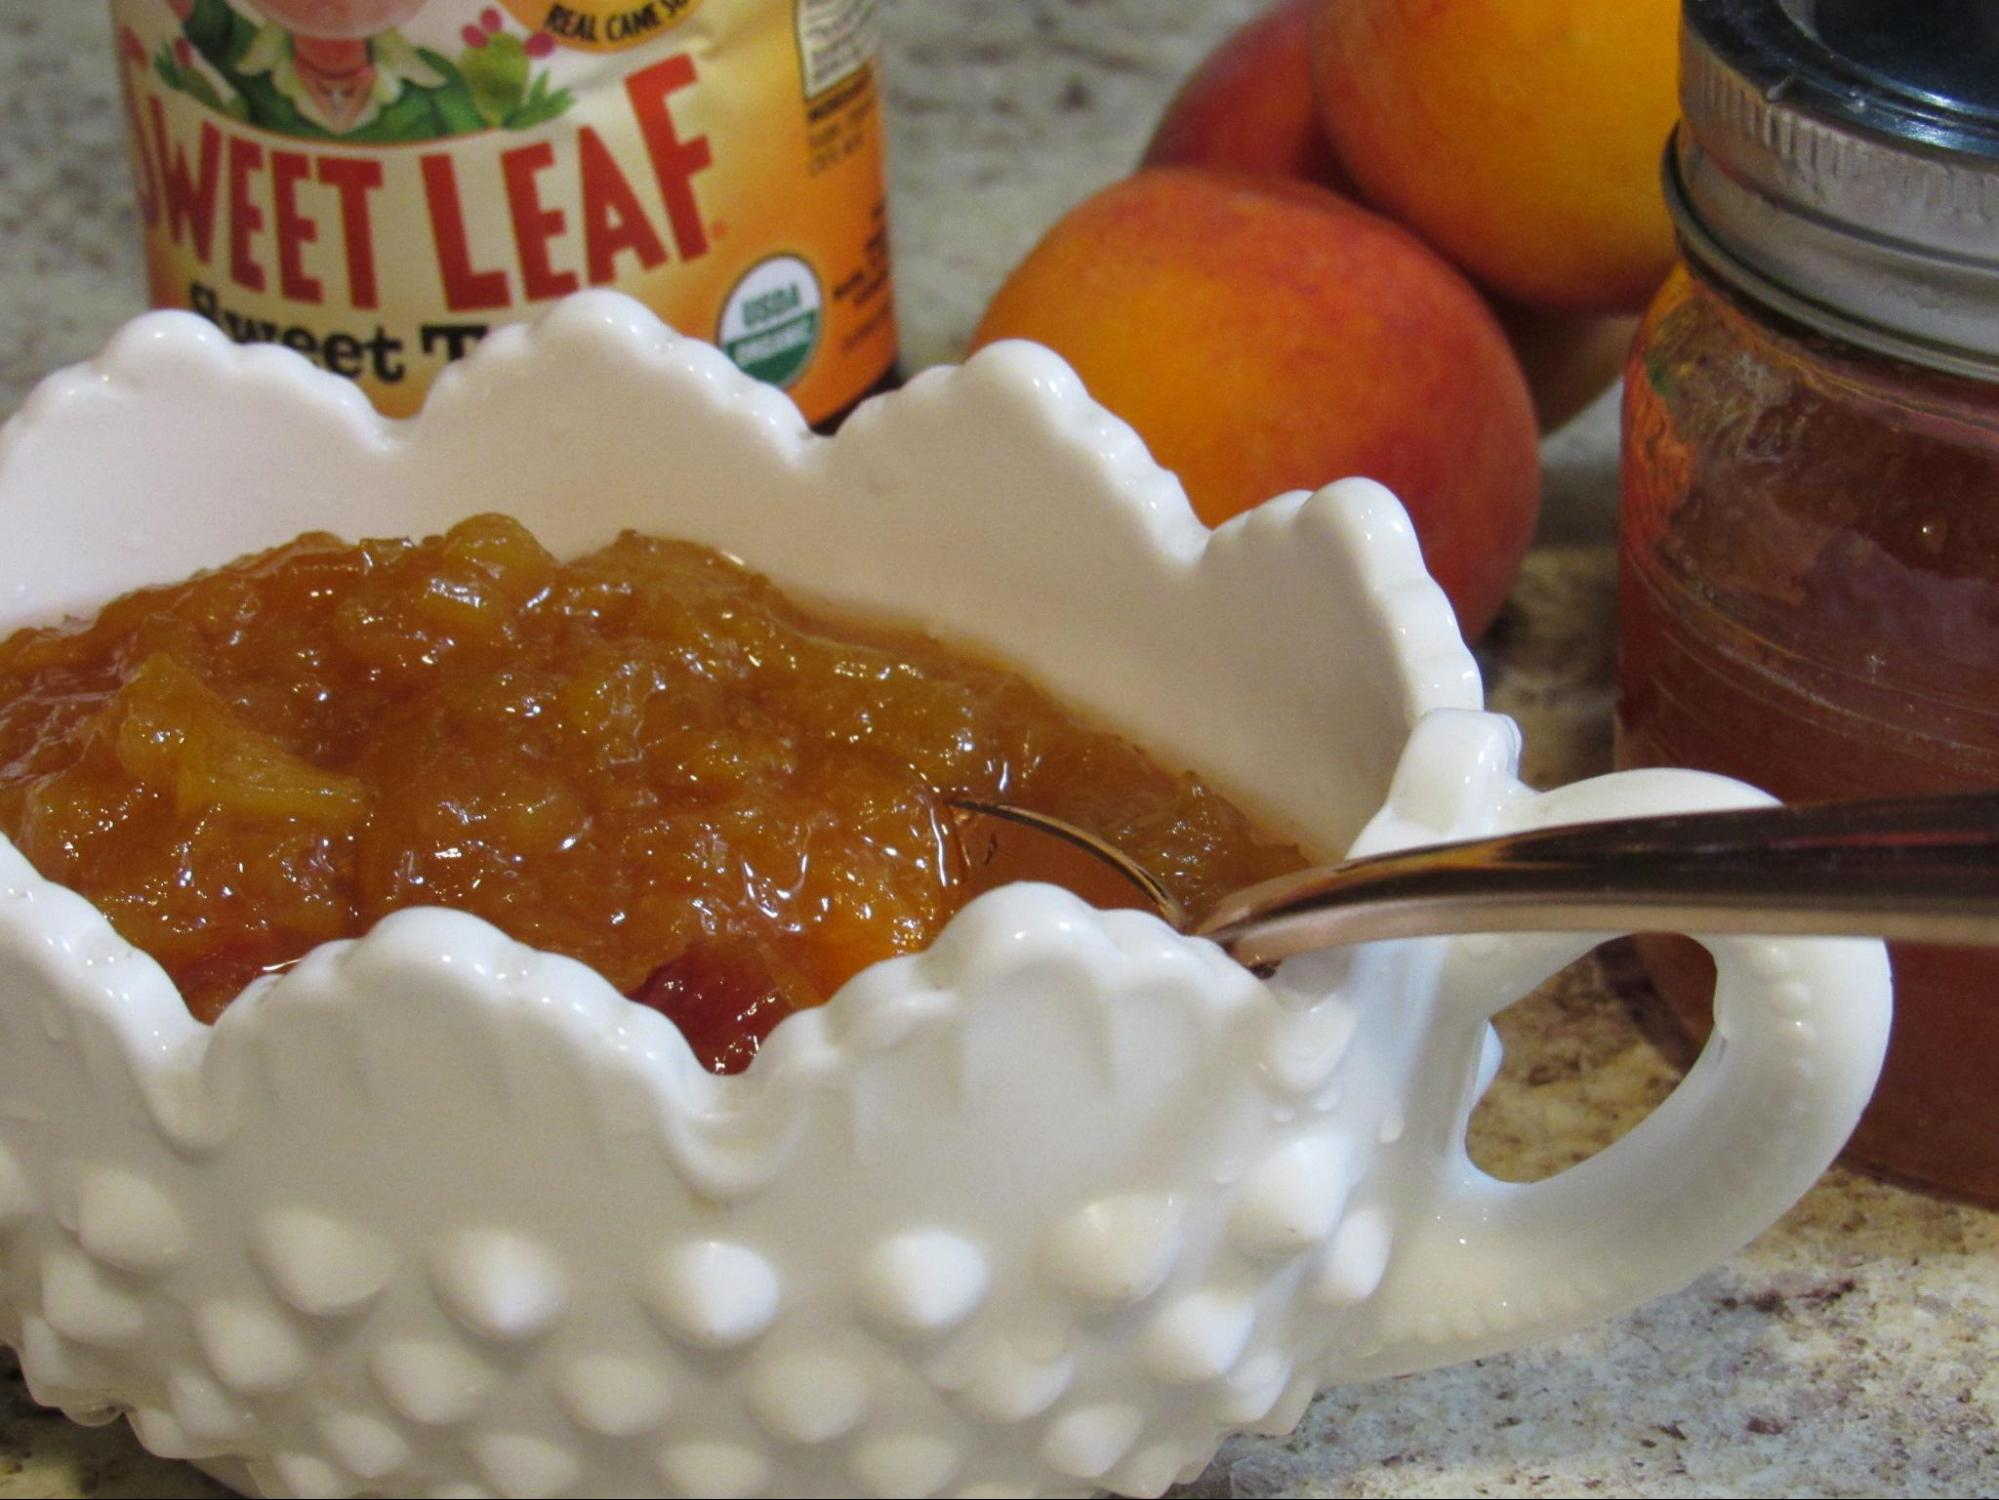 #AD Sweet Peach Iced Tea Recipe #HowSweetAreYou #Sweetbutnottoosweet #SweetLeaf @SweetLeafTea